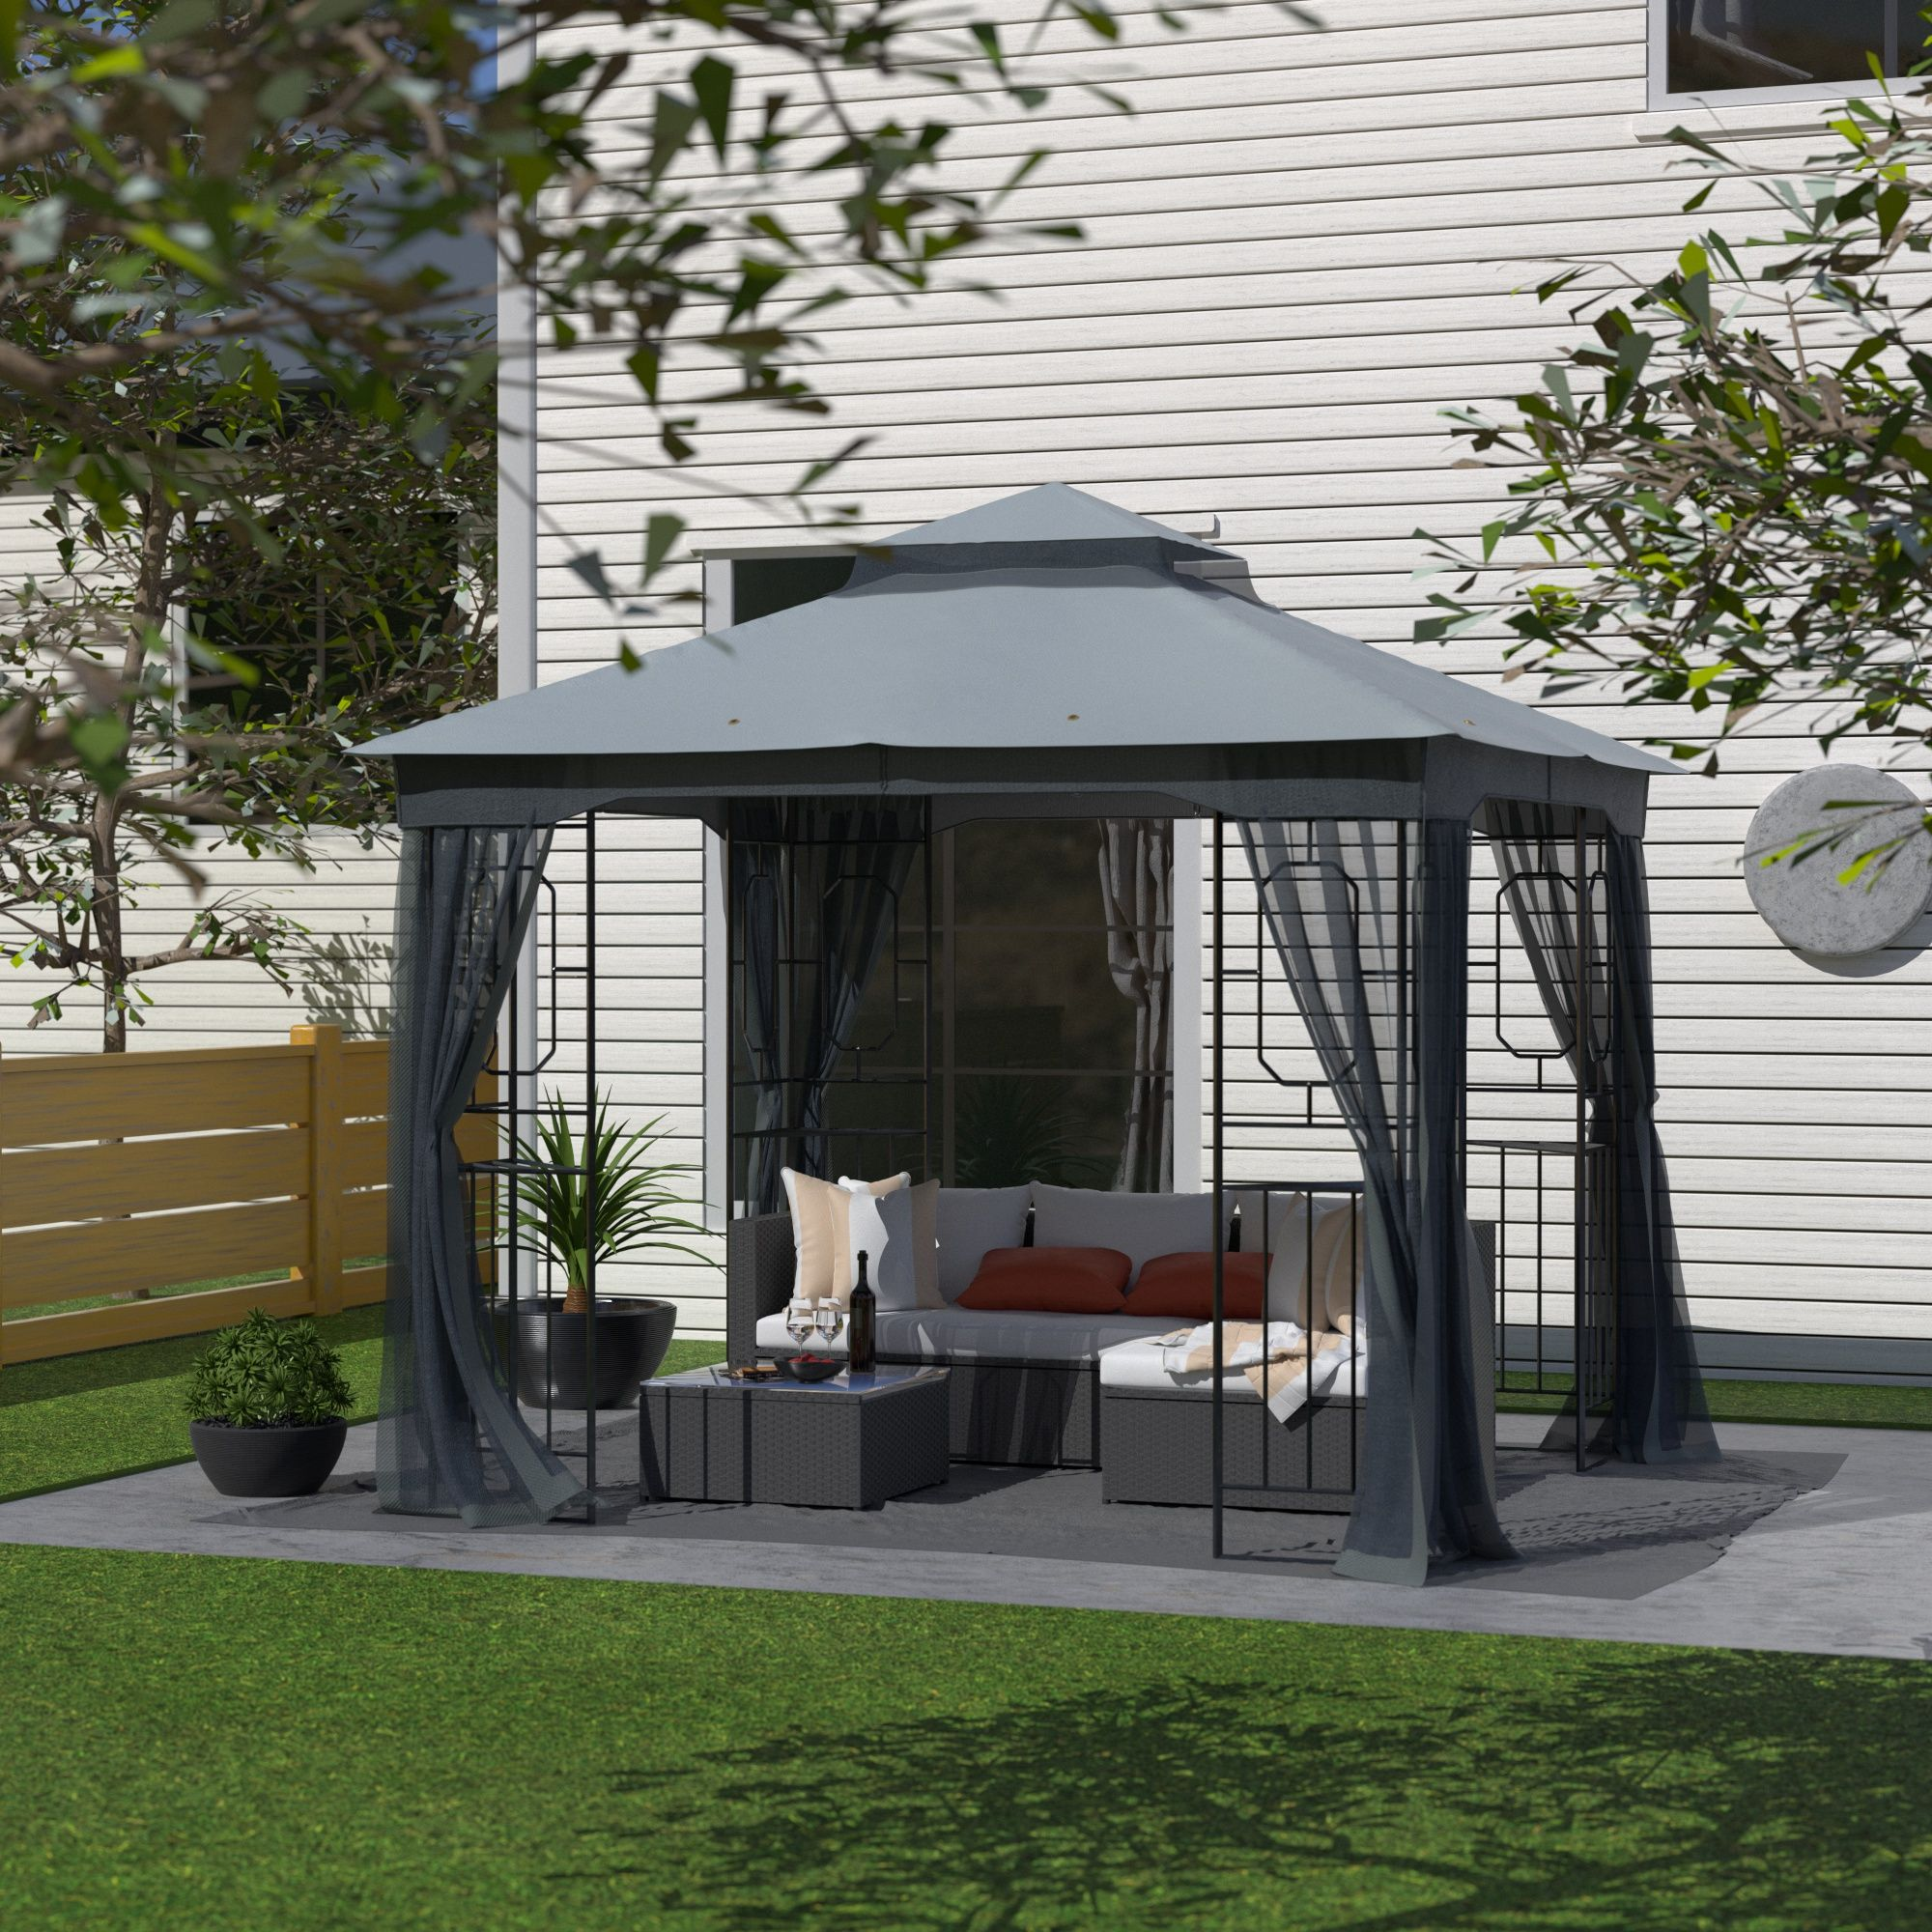 Cloud Mountain 10x10 Gazebo With Mosquito Netting Patio Polyester Fabric Garden Canopy Backyard Double Roof Vented Gazebo Canopy Dark Gray Walmart Com In 2020 Gazebo Patio Gazebo Gazebo Canopy